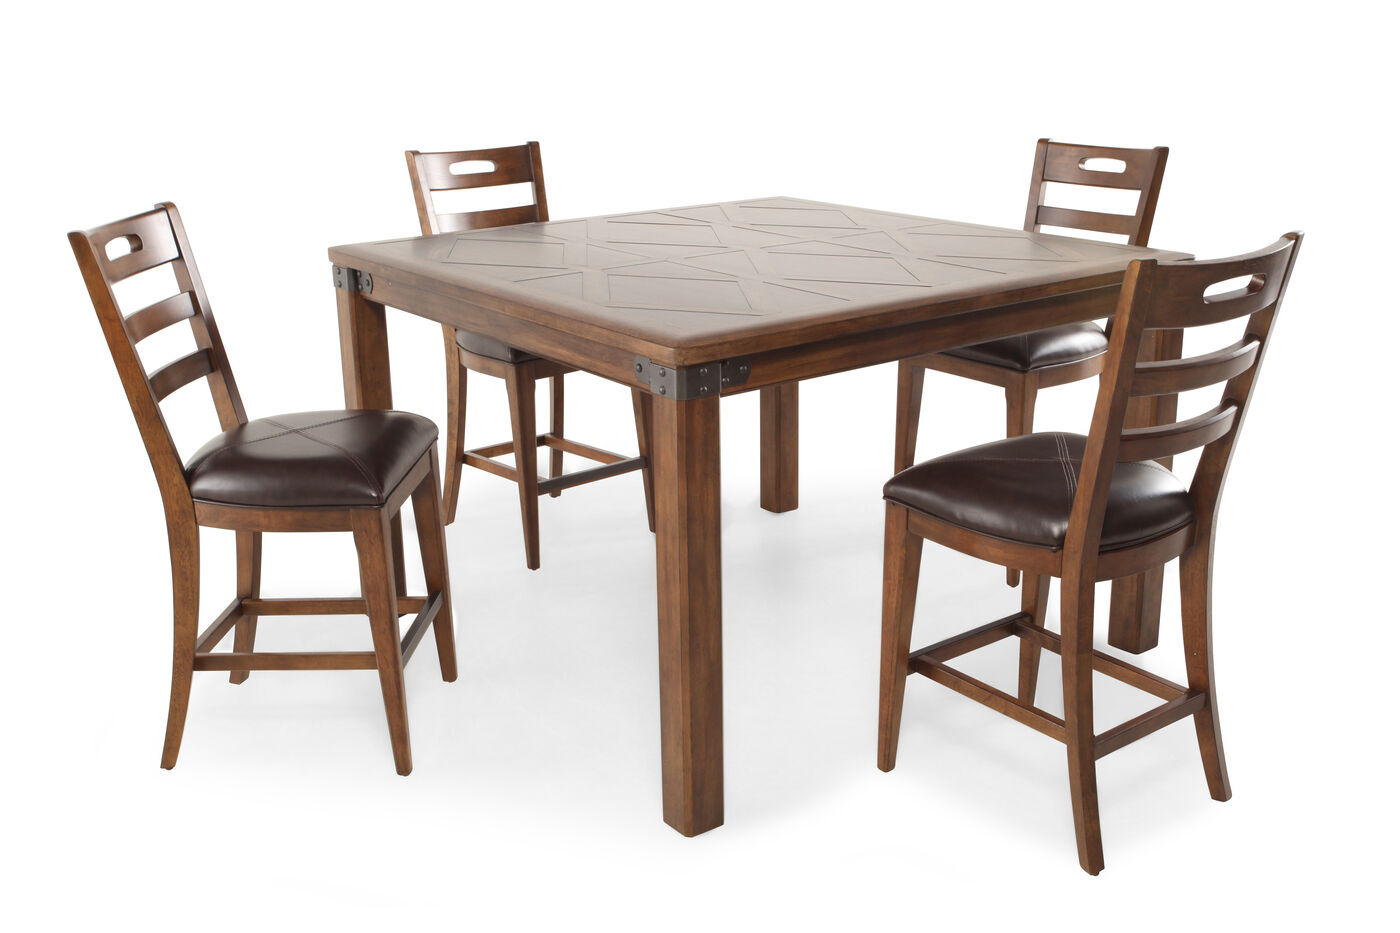 Pulaski heartland falls five piece gathering pub dining set mathis brothers furniture - Pub dining room sets ...